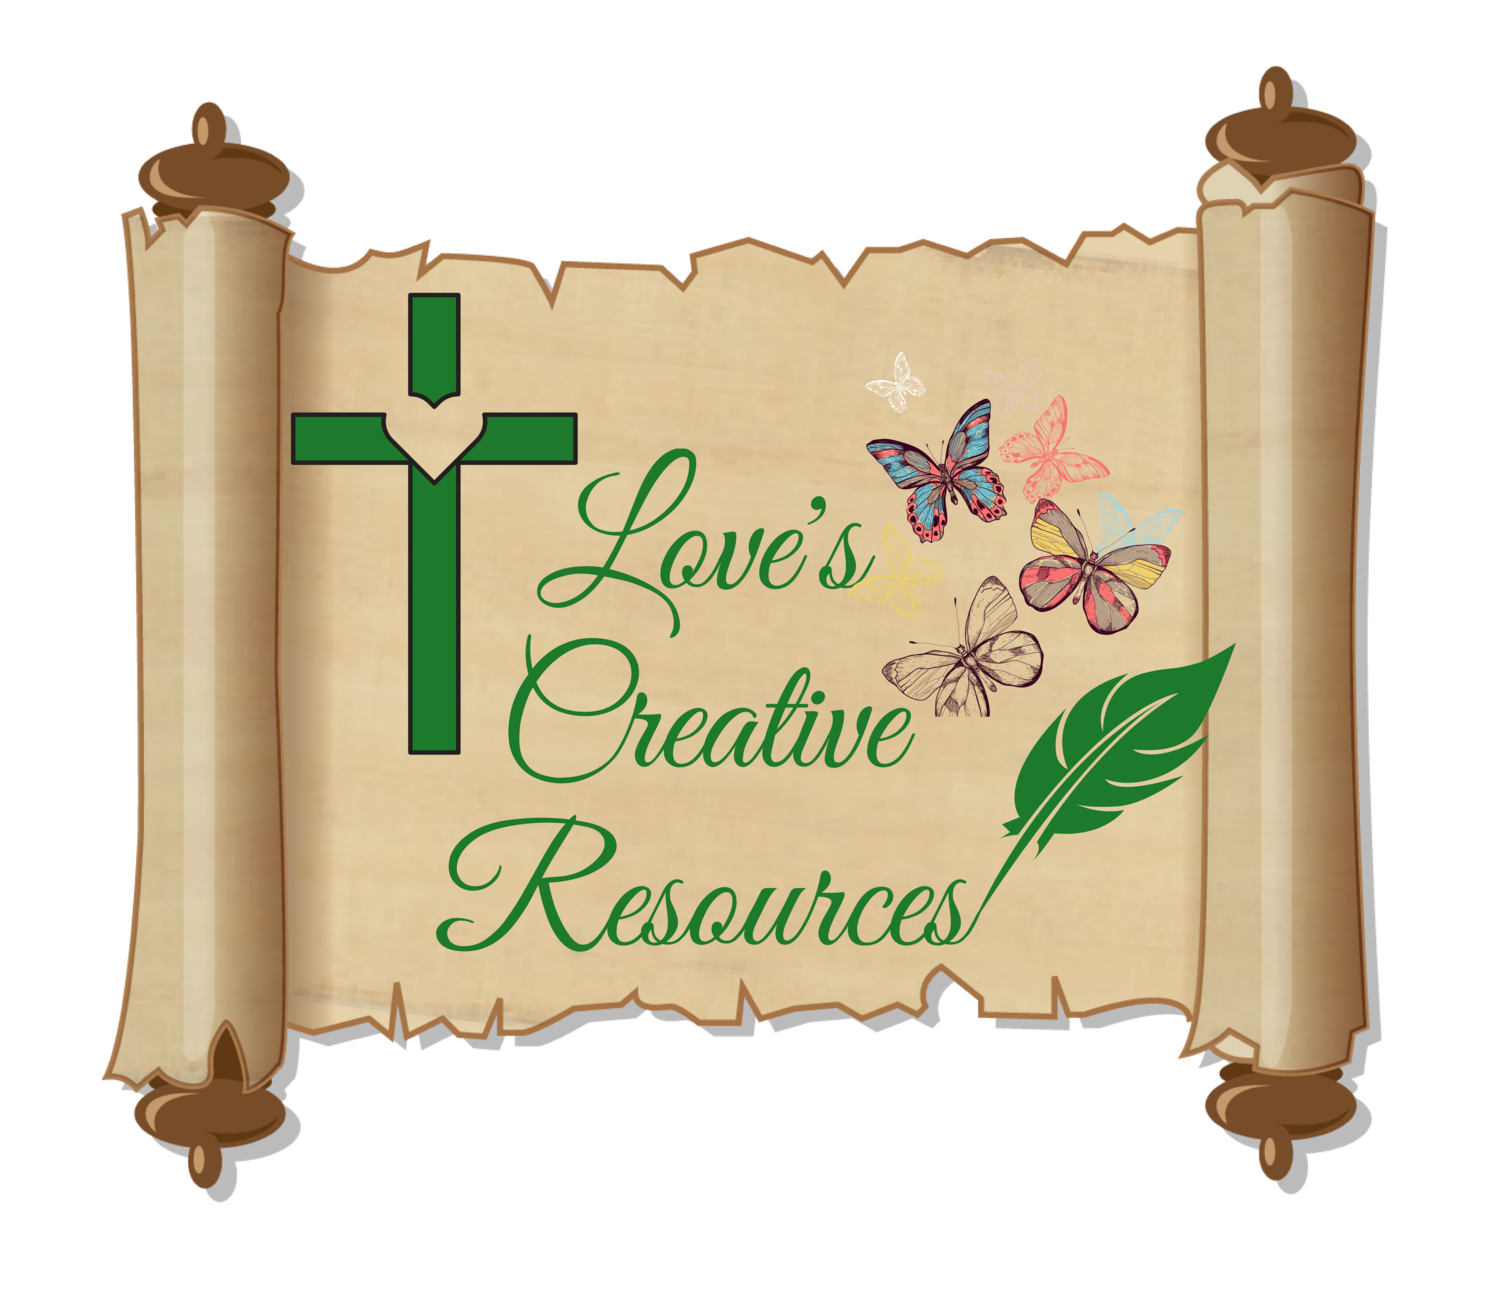 Love's Creative Resources